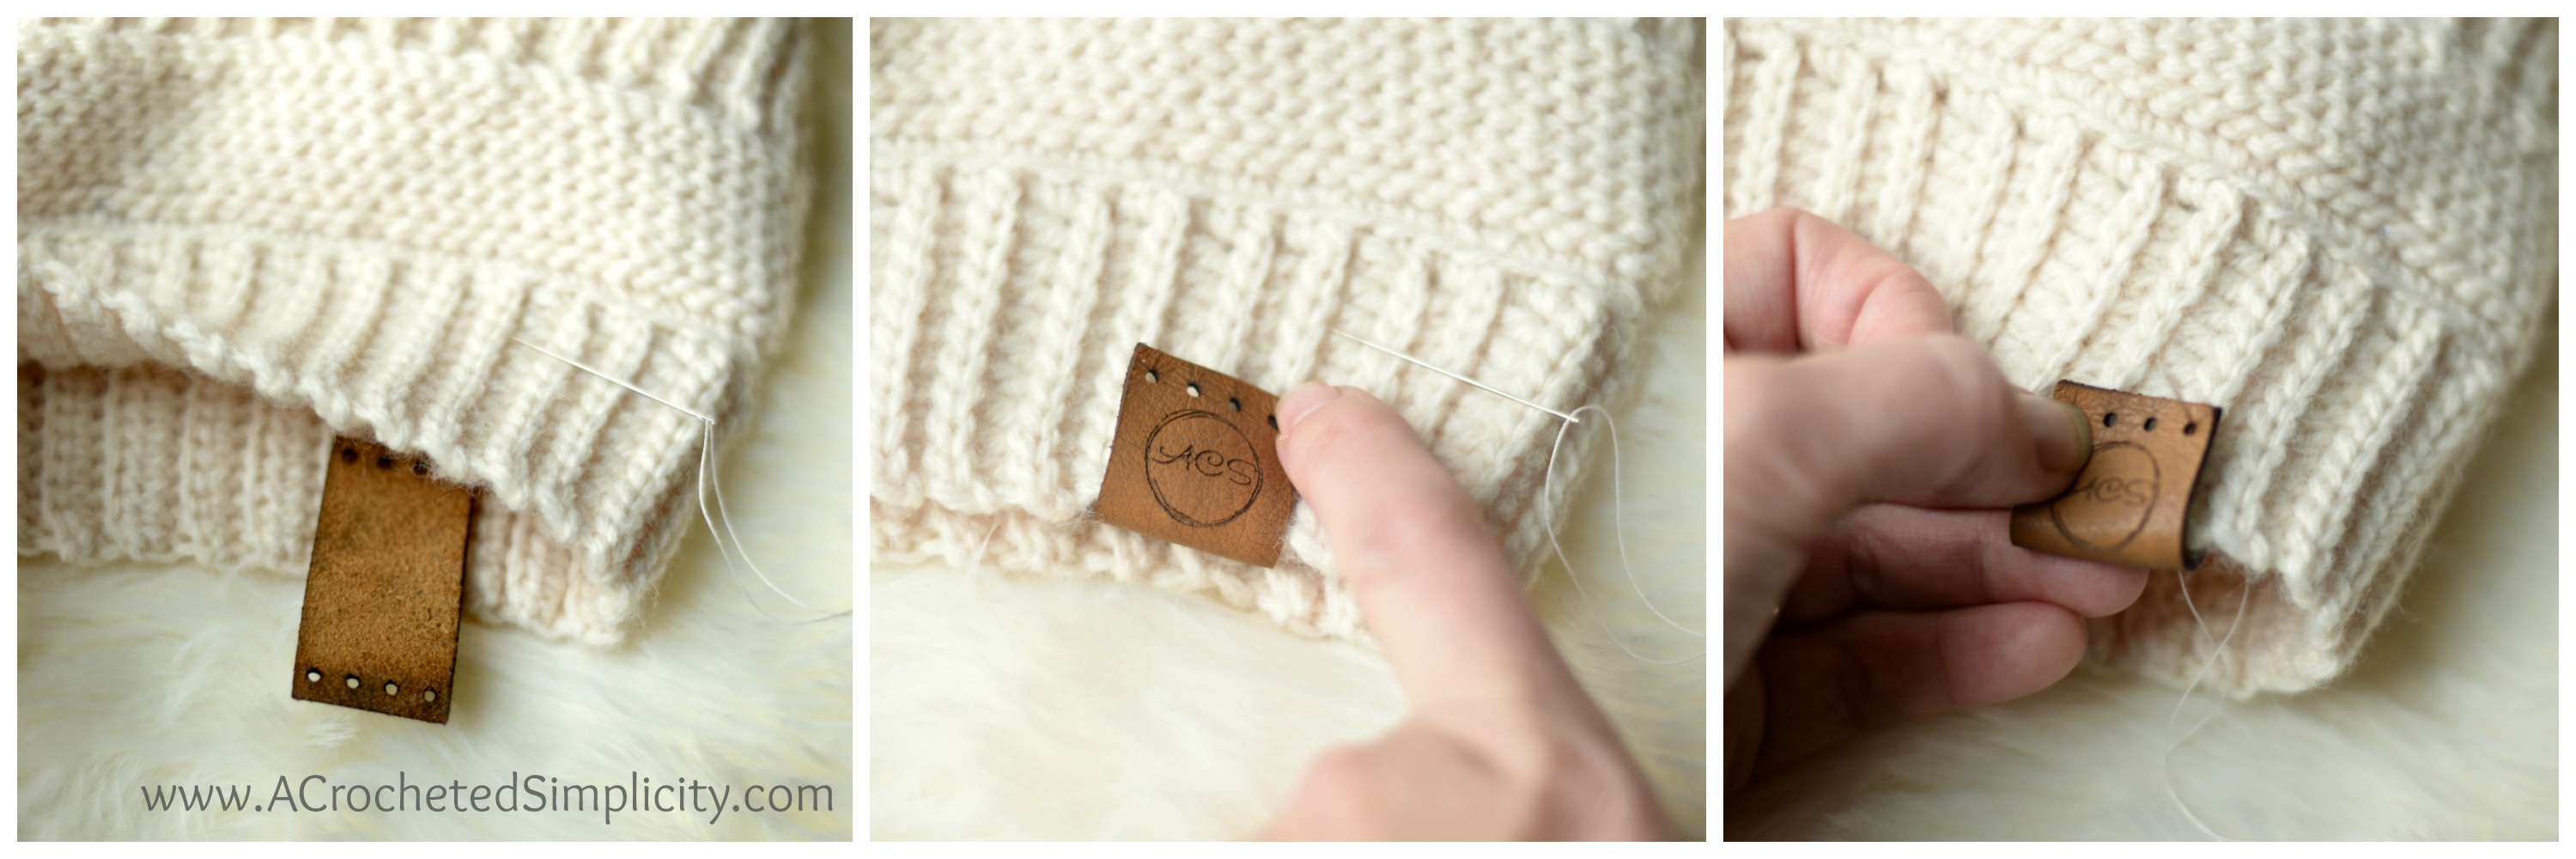 f62cf1e0161 A Complete Photo Tutorial - How to Add Tags to Your Handmade Crochet Items  by A